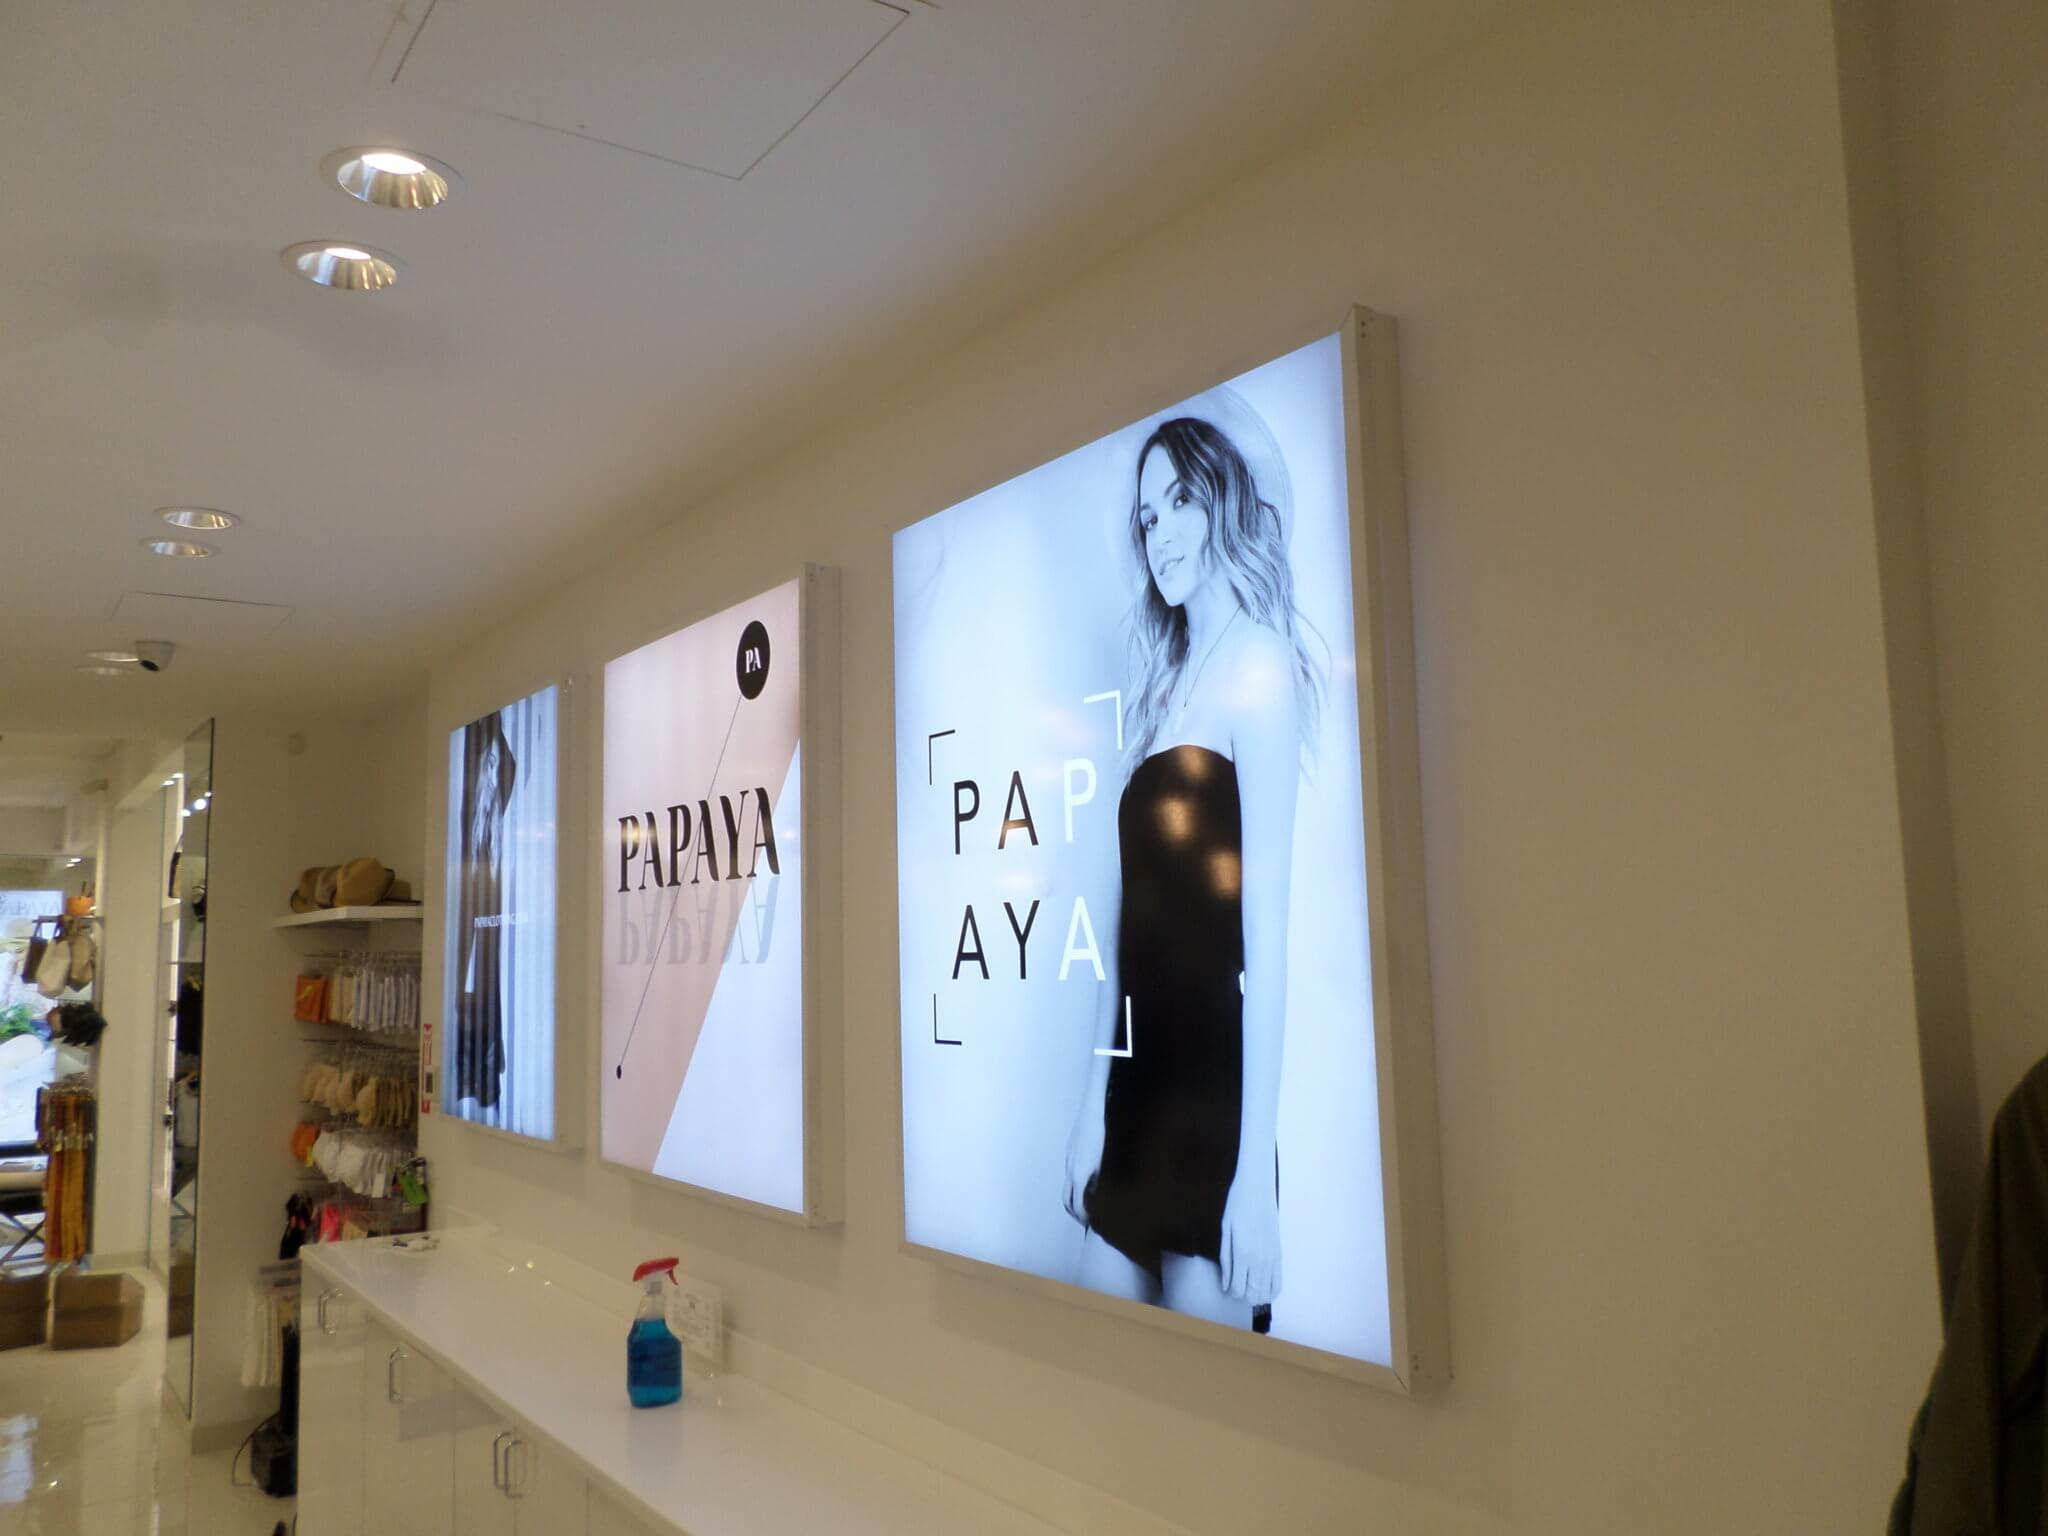 Papaya Clothing light box signs, installed in the Westfield Oakridge Mall, San Jose